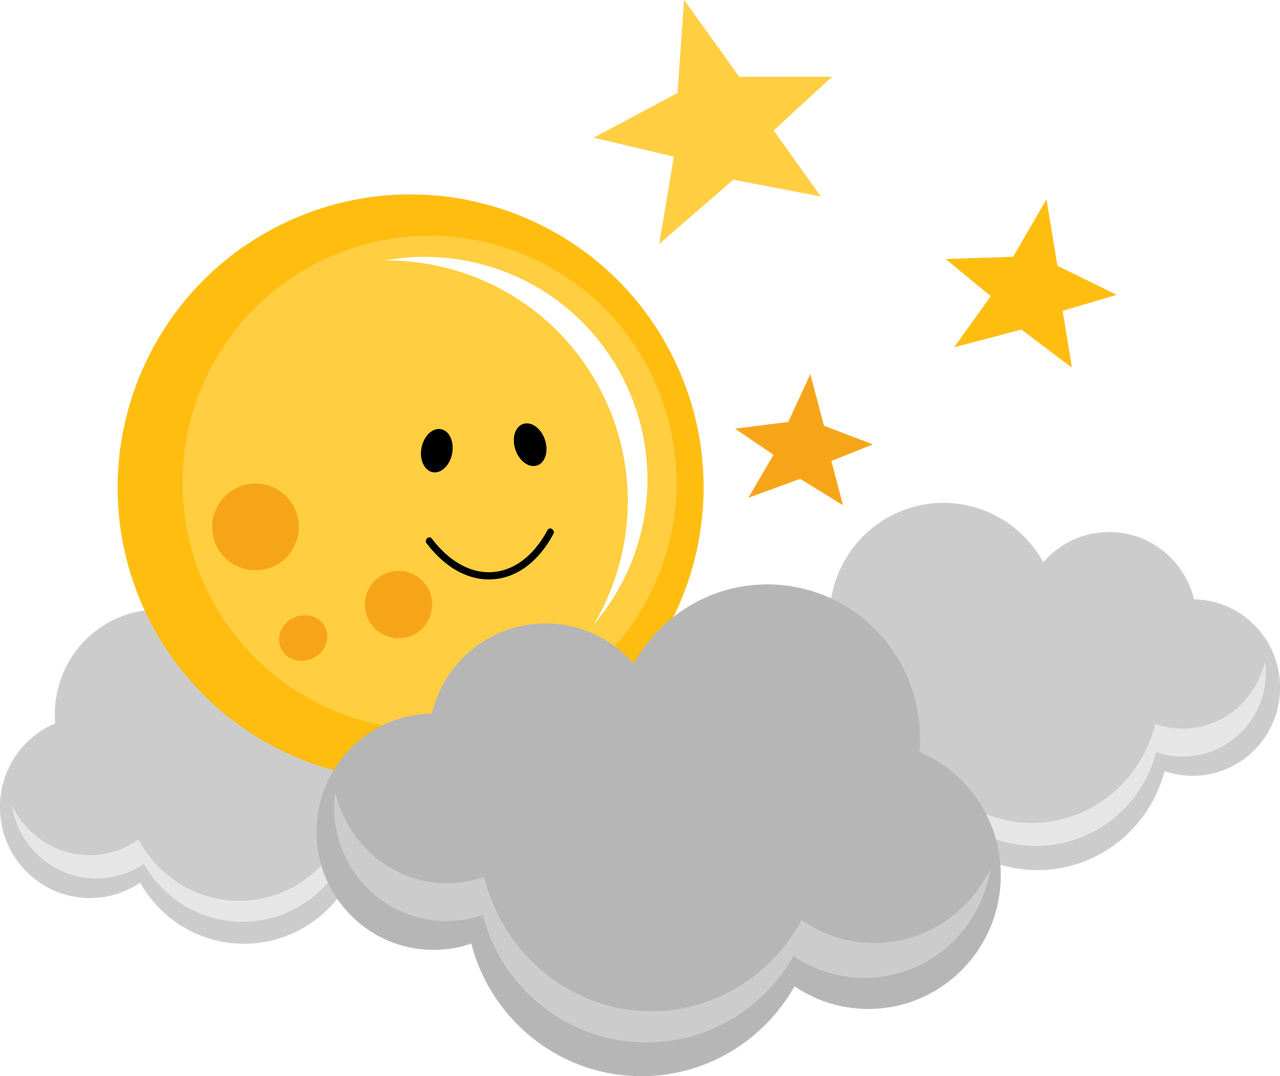 Clouds clipart cute. Ppbn designs moon with